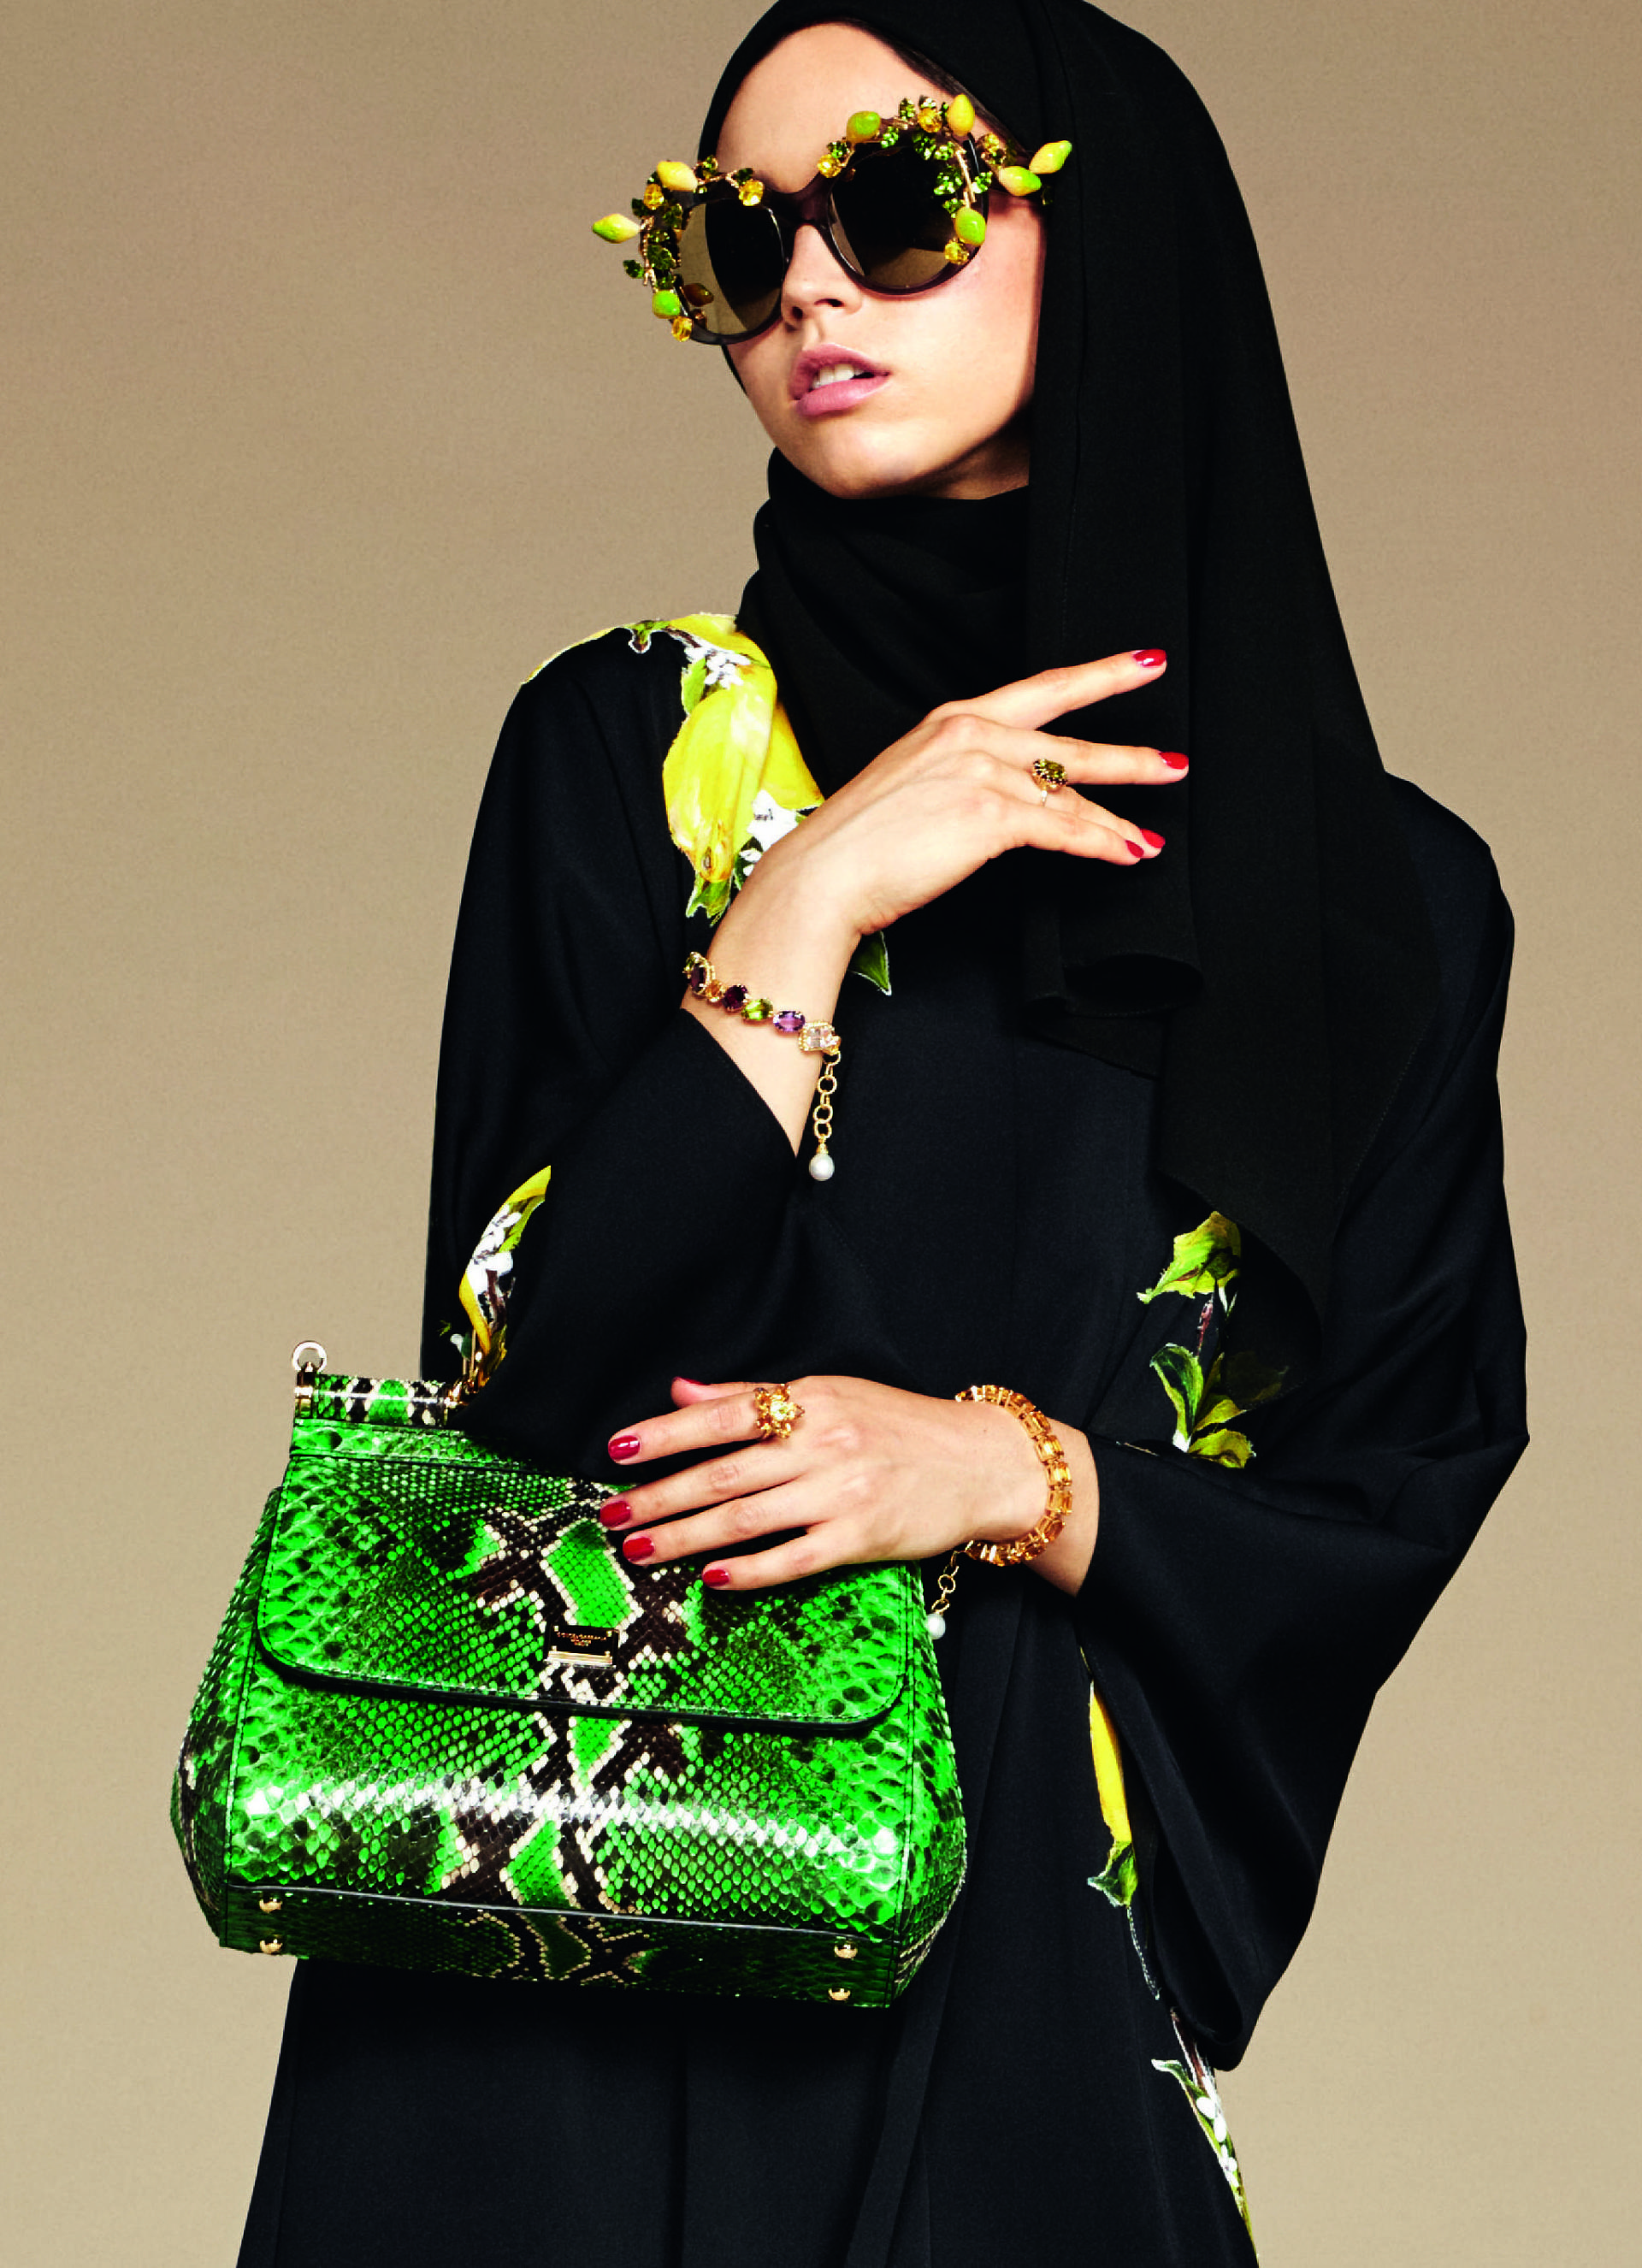 Over_Exposed_Dolce-Gabbana-Hijab-Abaya-Collection5